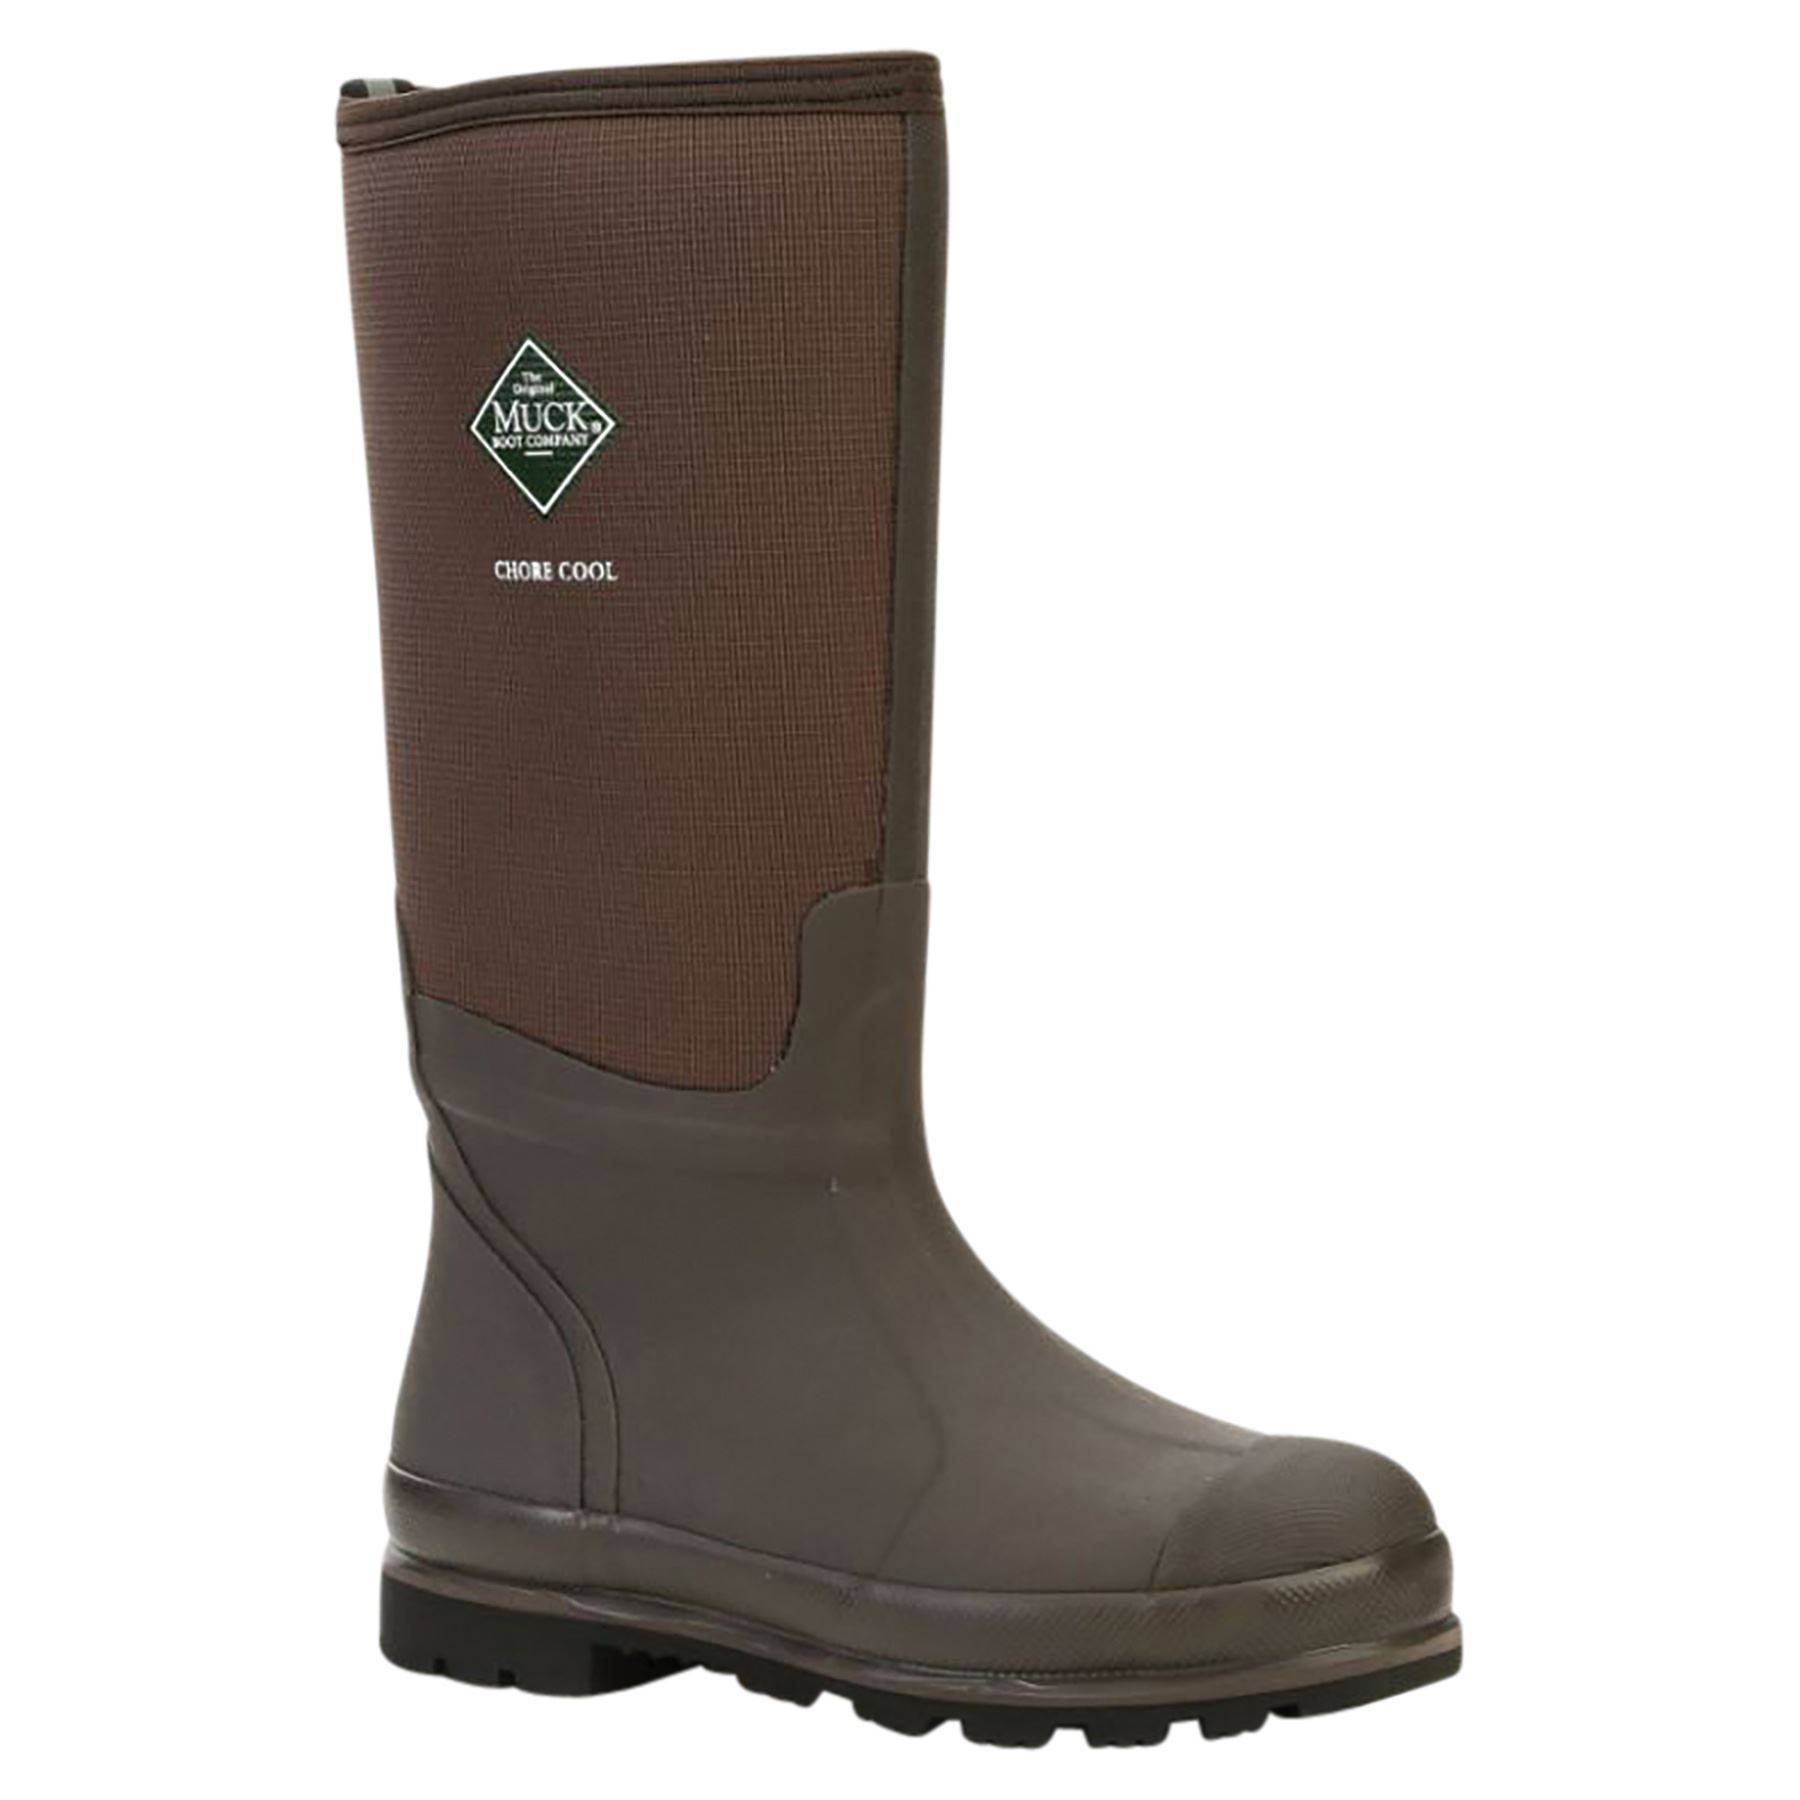 Cool Muck Boots